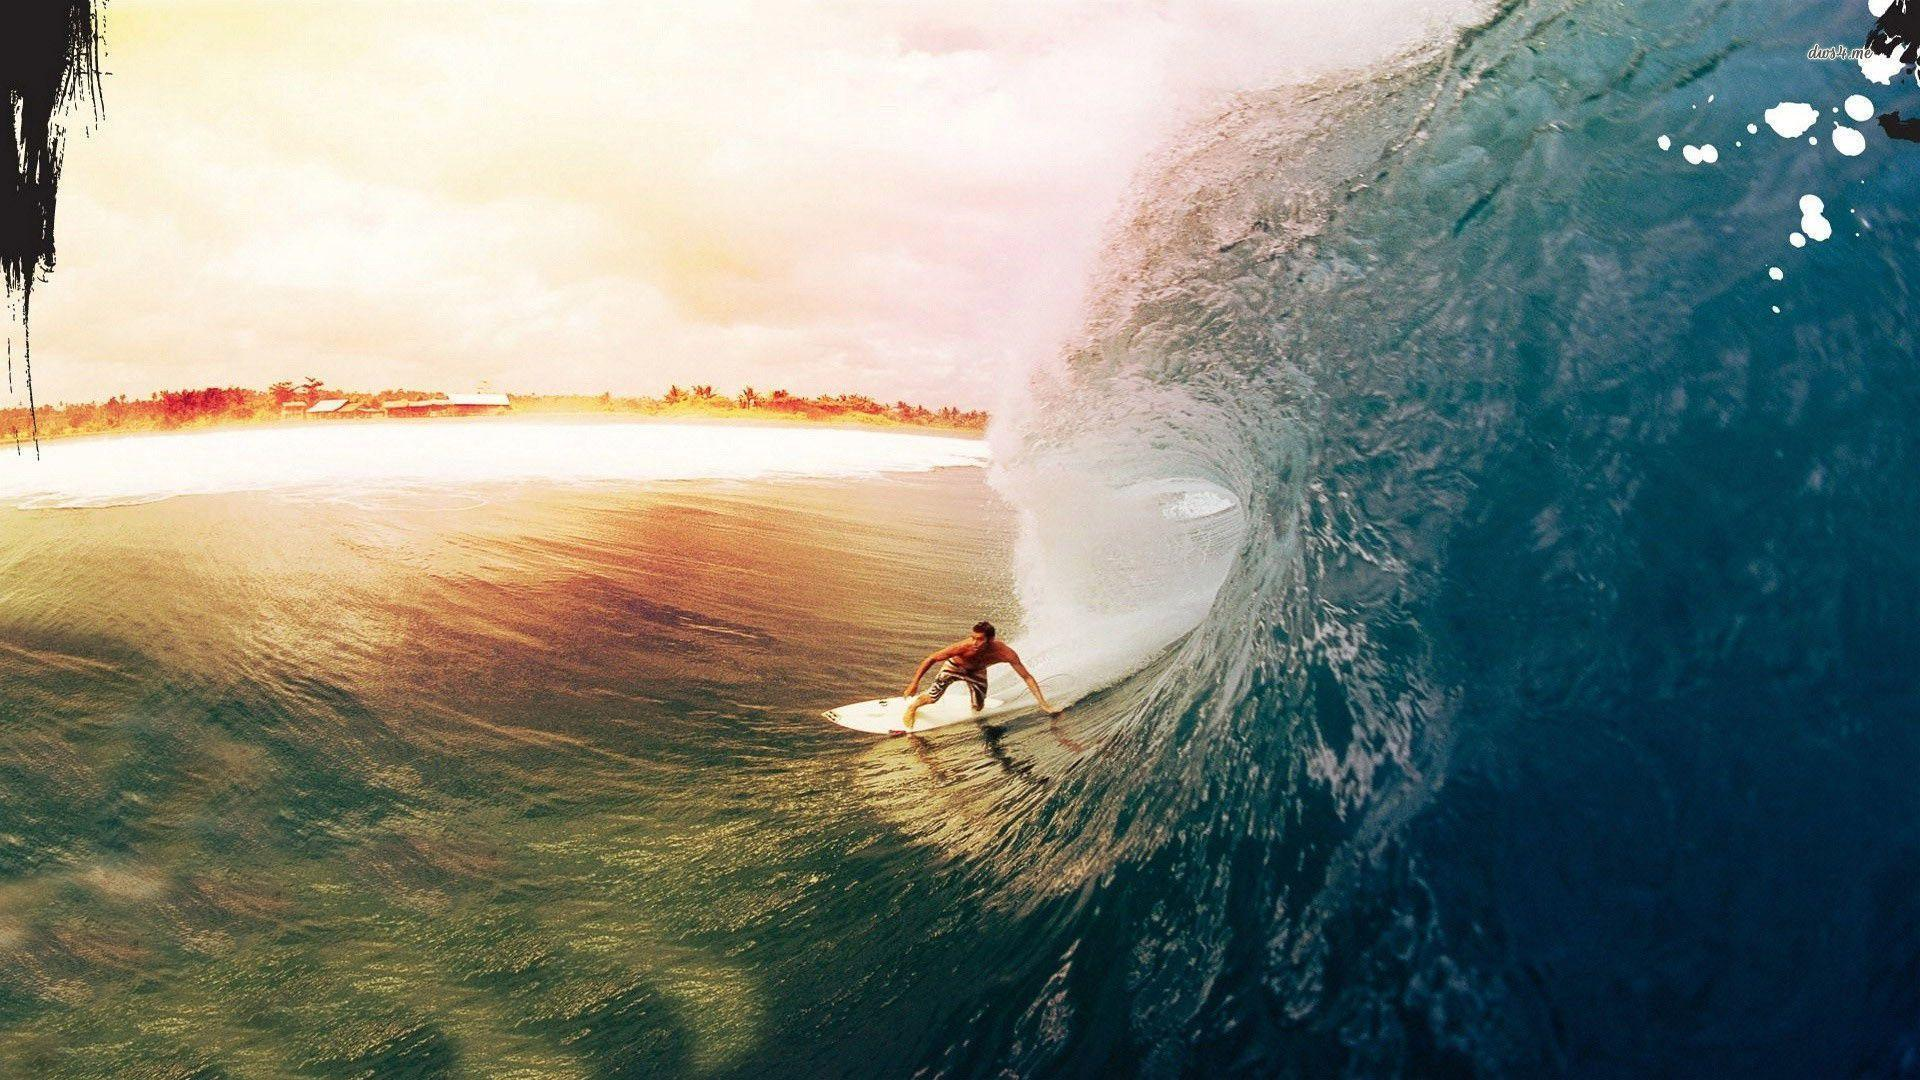 surfer wallpapers - wallpaper cave